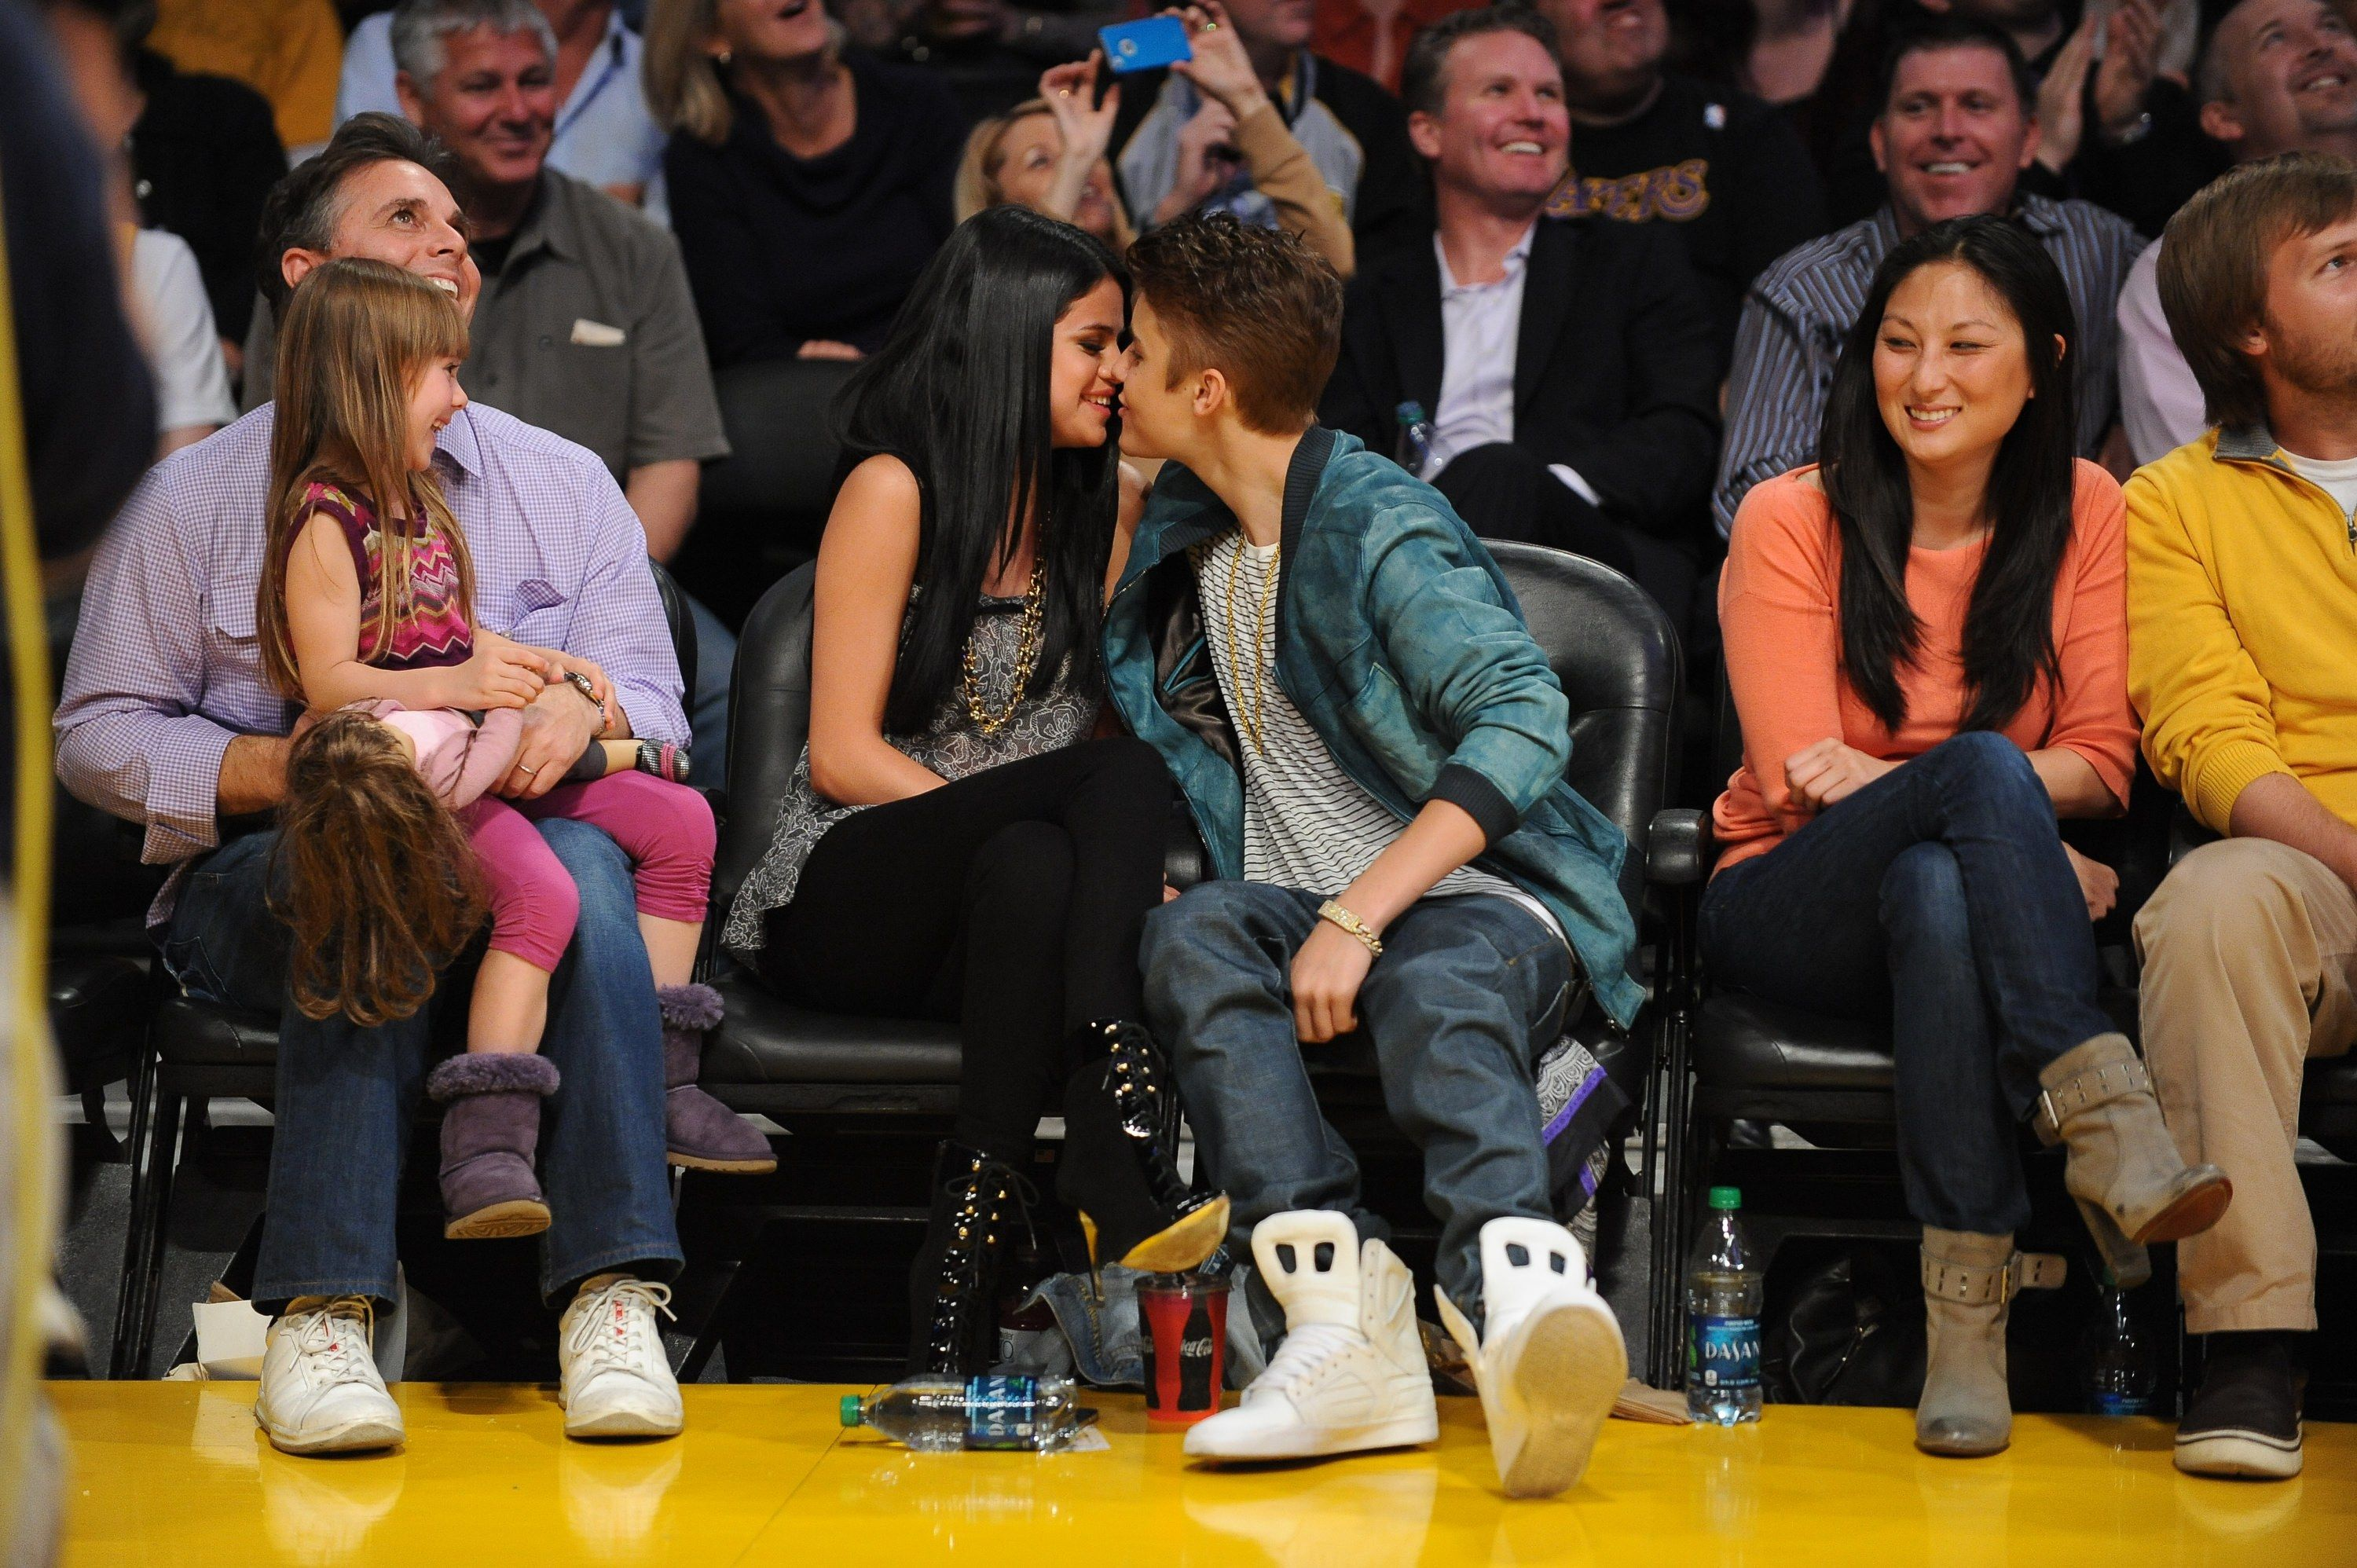 Pin by JB on Selena Gomez und Justin Bieber | Pinterest | Justin ...